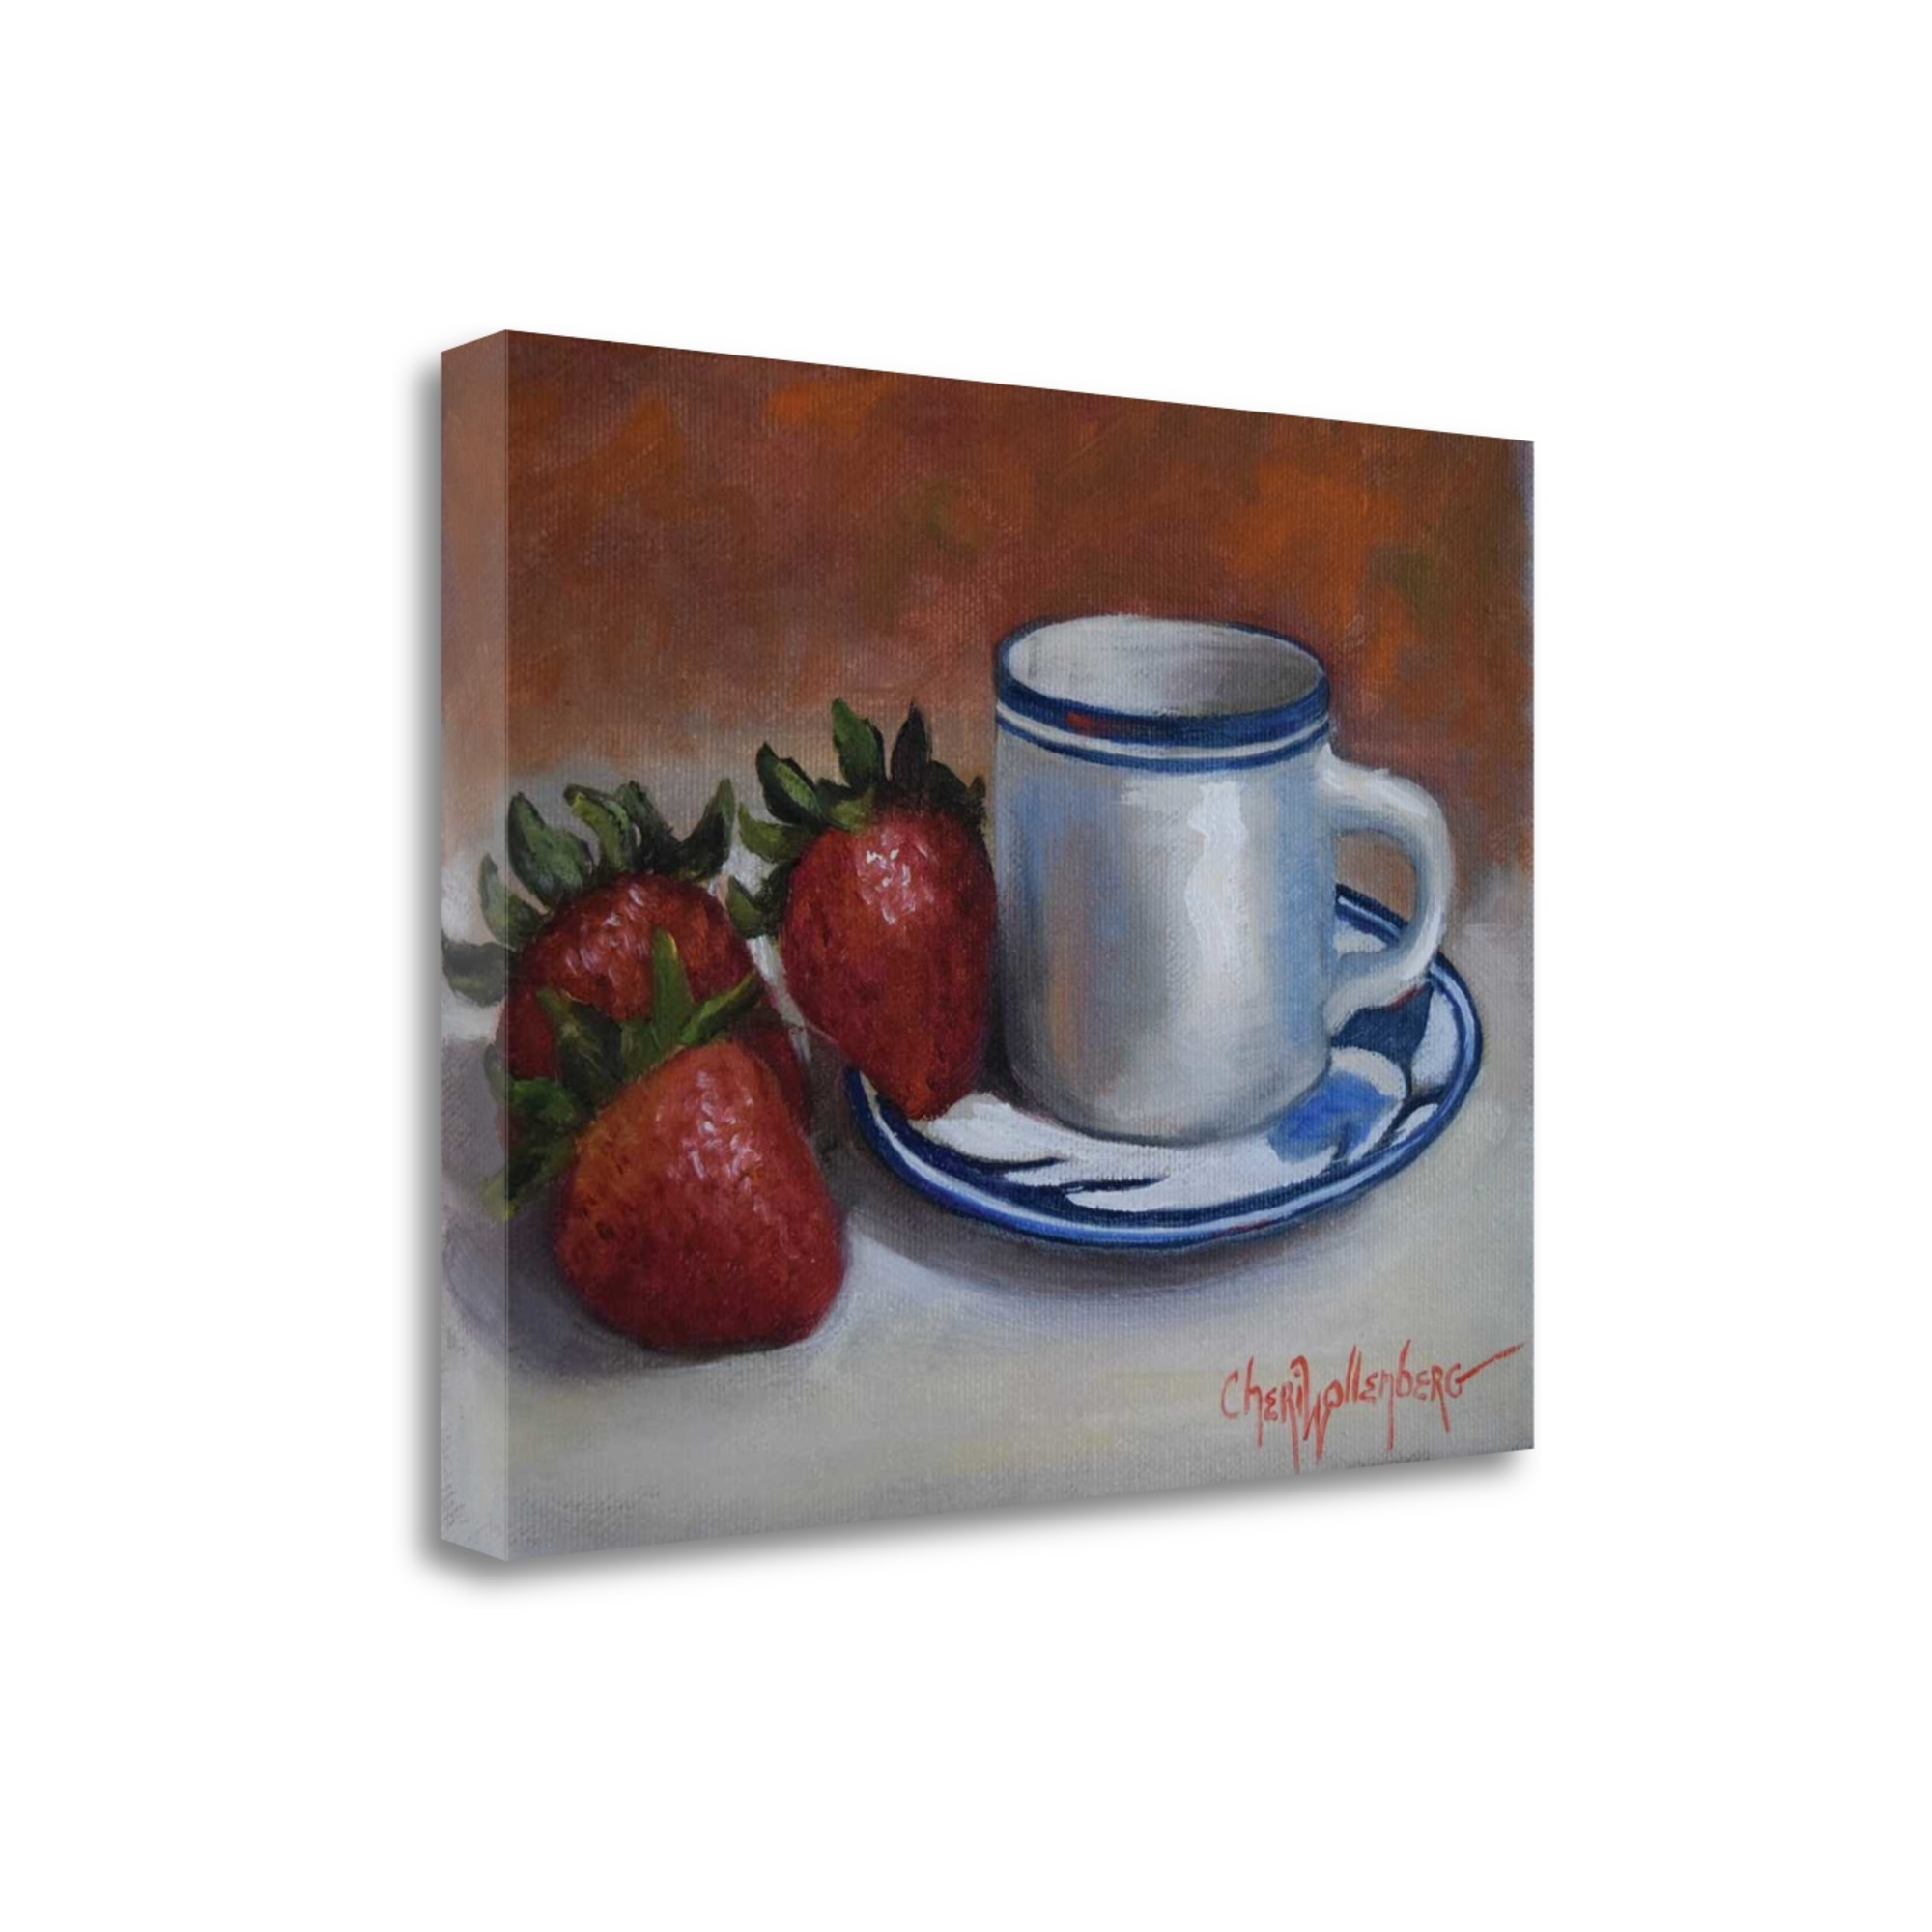 """Strawberries And Cup And Saucer By Cheri Wollenberg, 29\"""" x 22\"""" Fine Art Giclee Print on Gallery Wrap Canvas, Ready to Hang"""